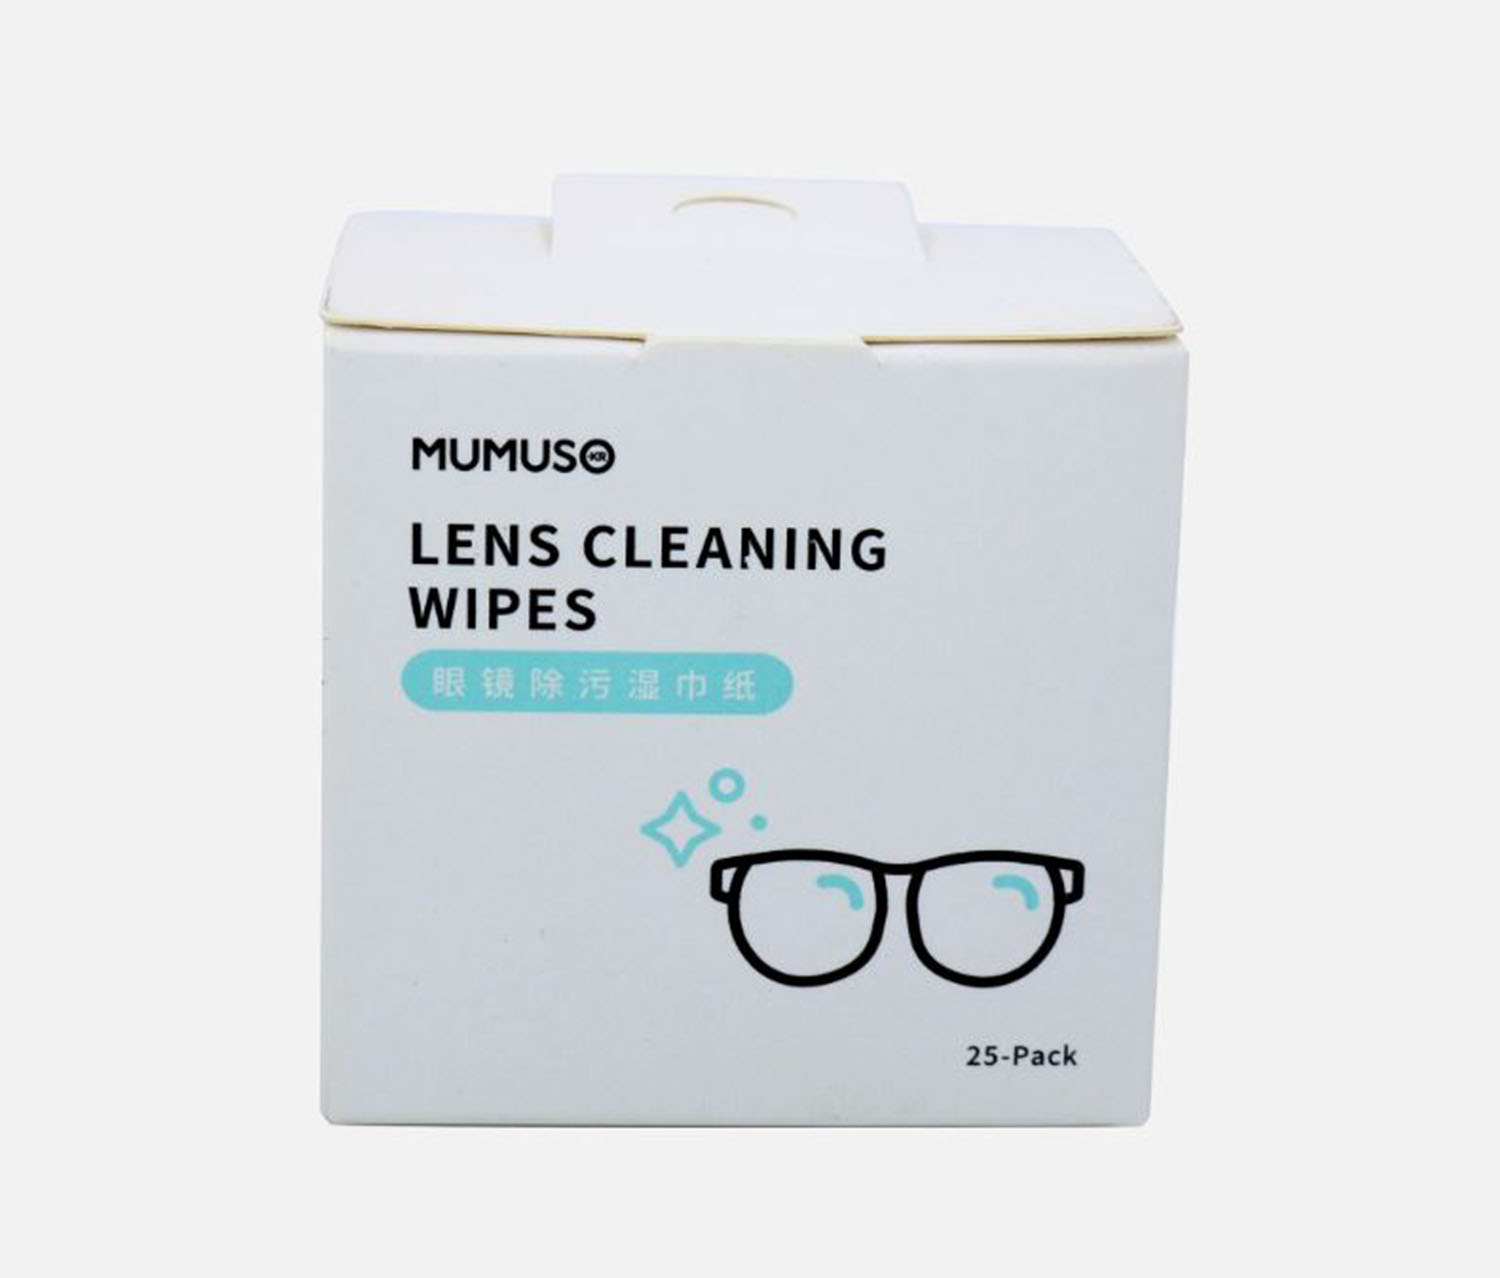 Lens Cleaning Wipes, White